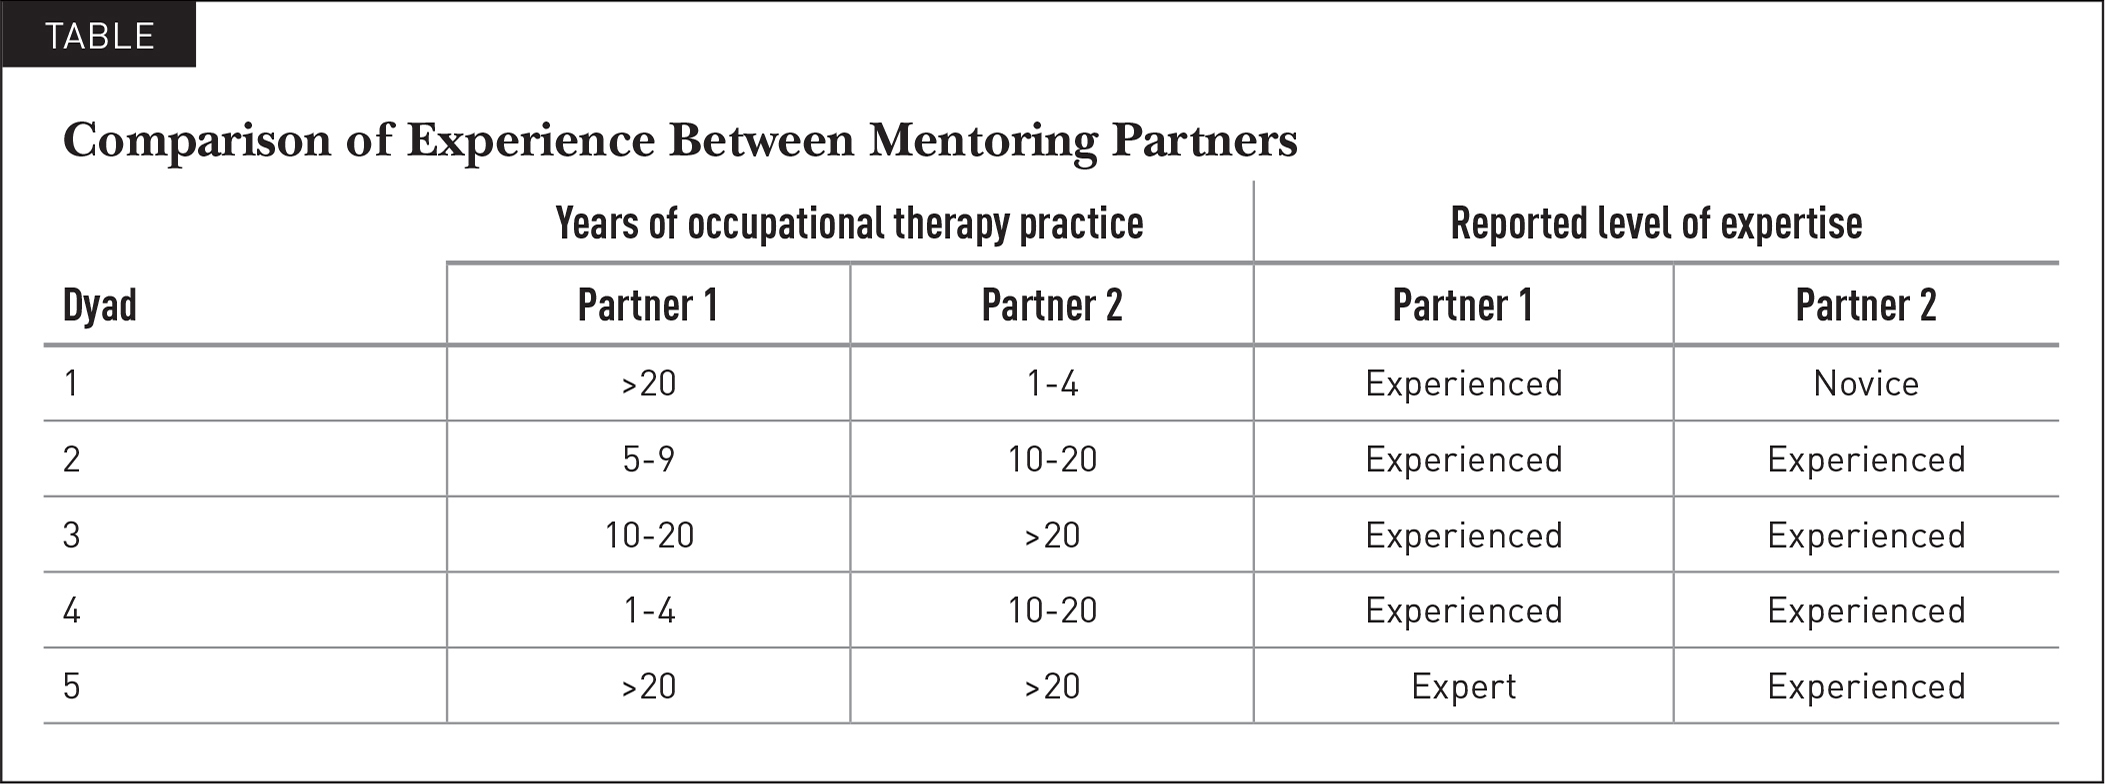 Comparison of Experience Between Mentoring Partners